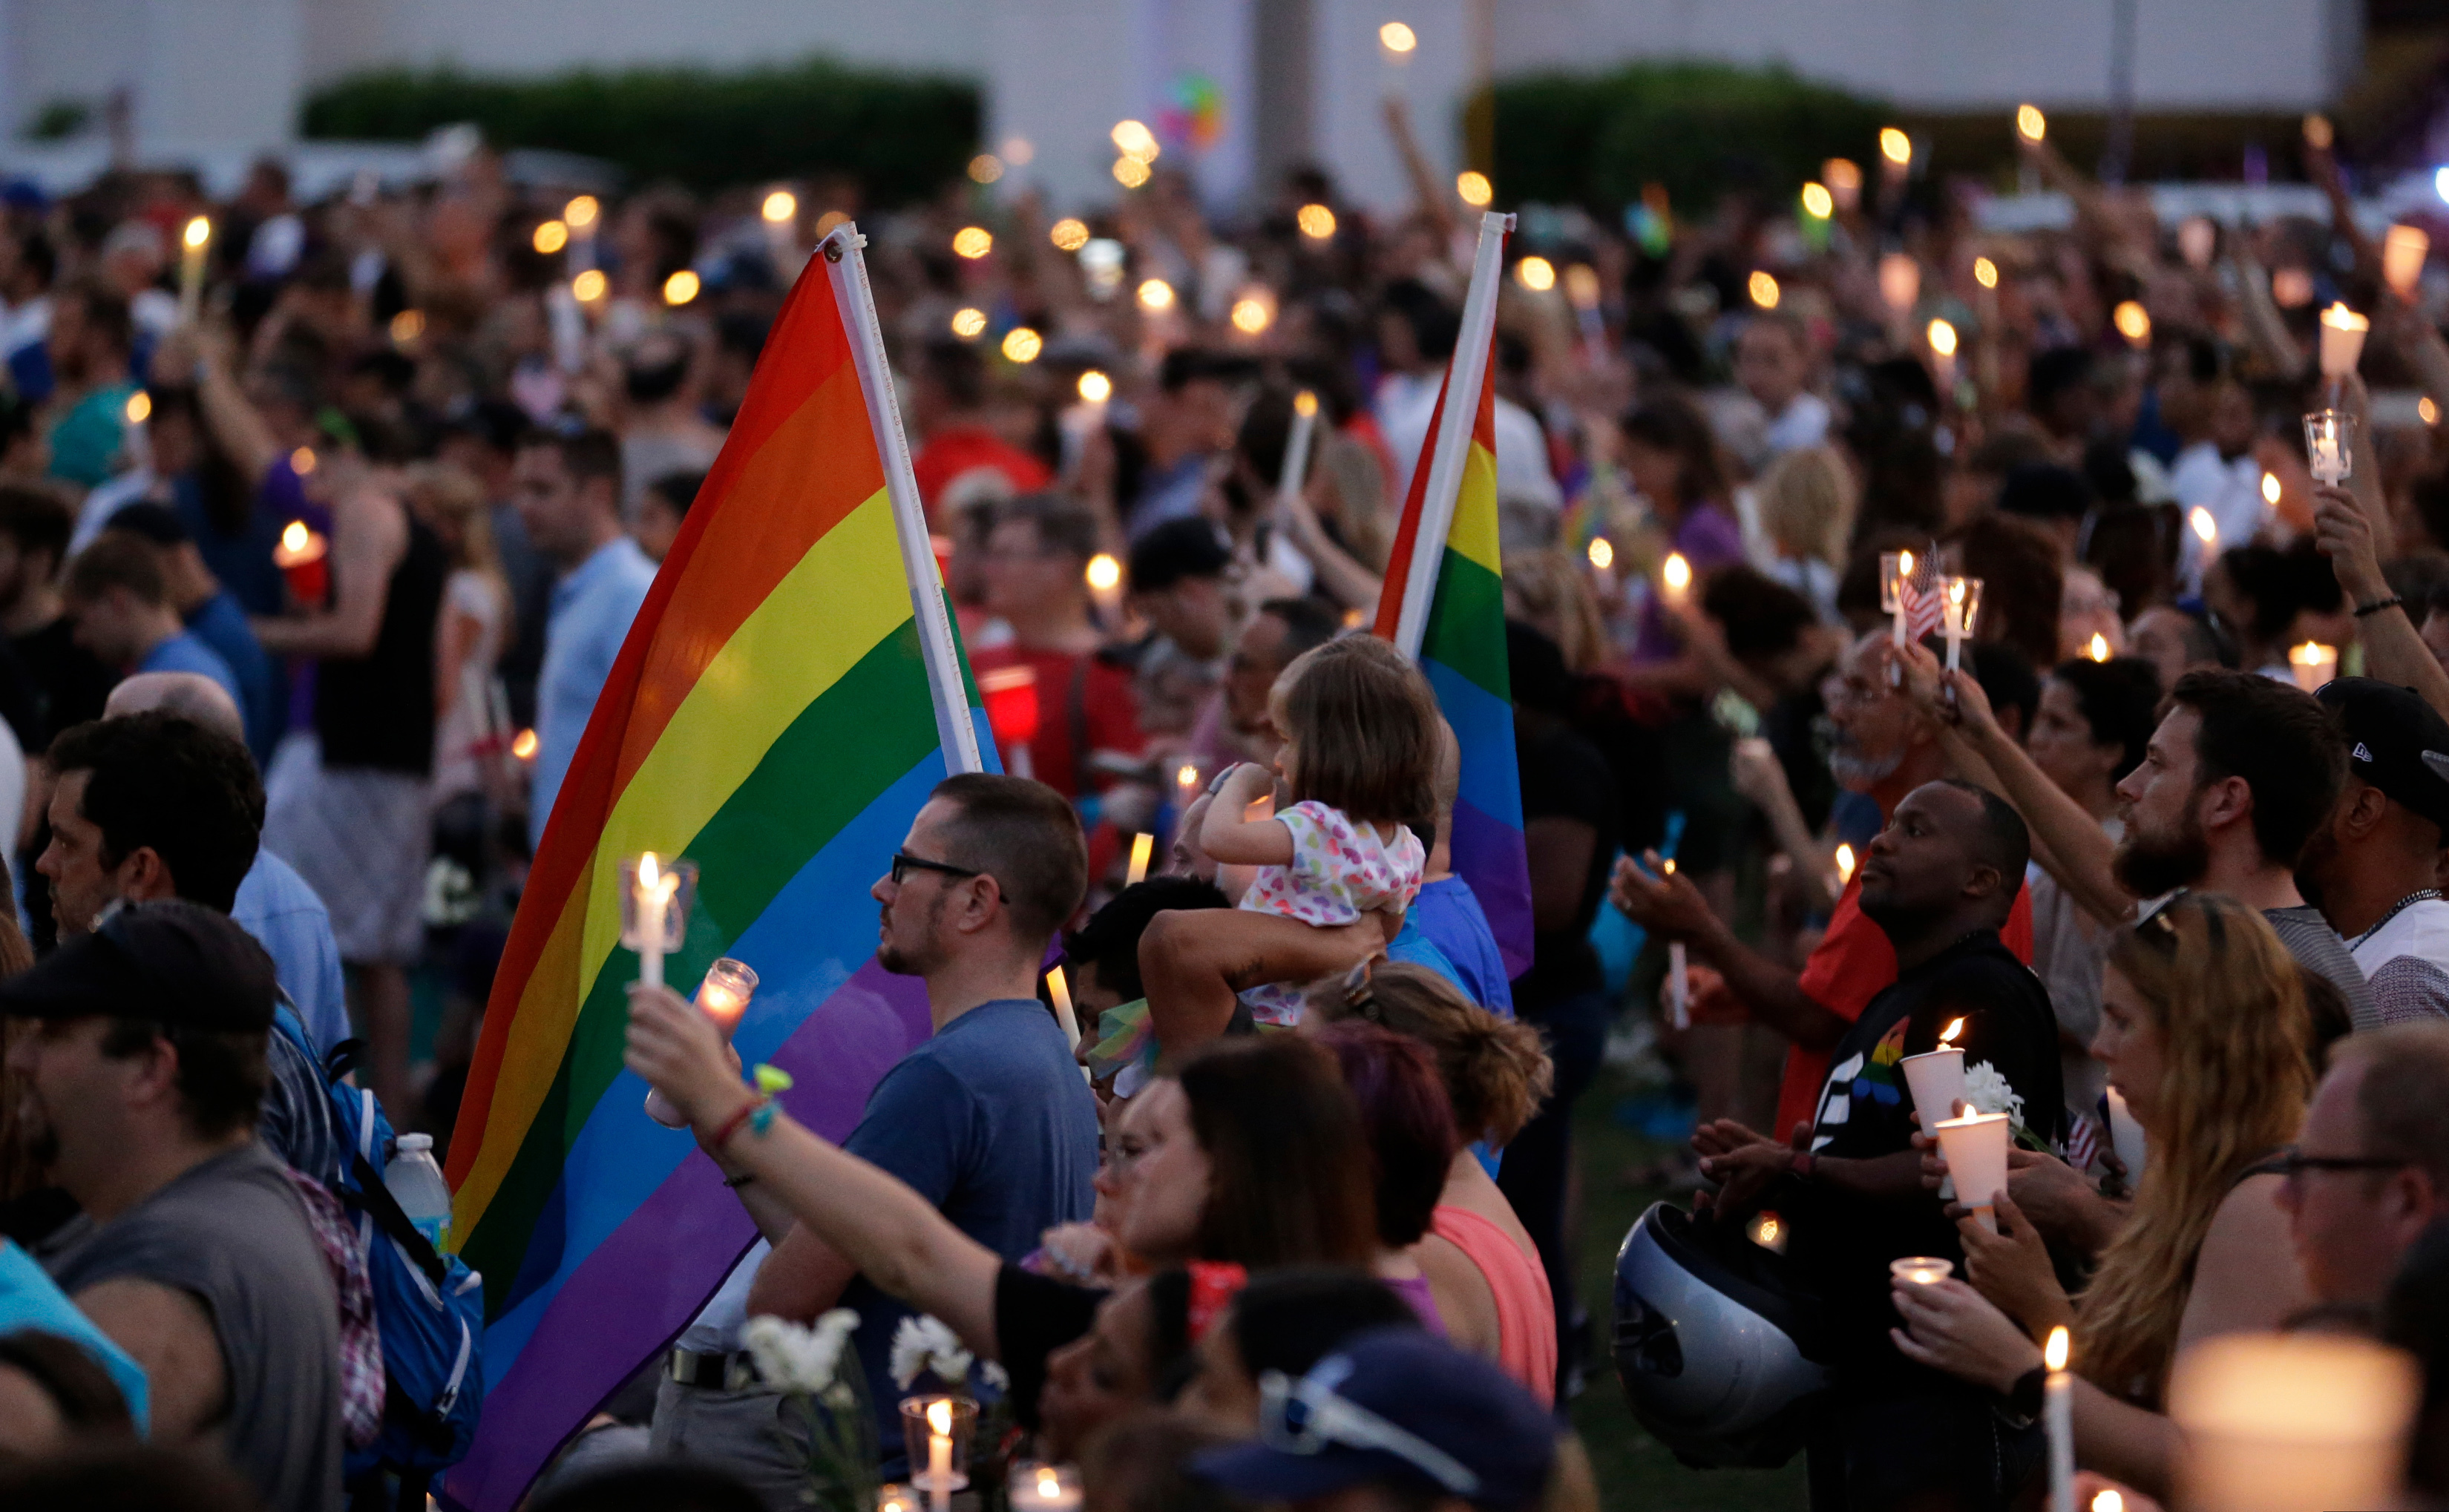 Supporters of the victims of the recent mass shooting at the Pulse nightclub attend a vigil at Lake Eola Park, June 19, 2016, Orlando, Fla.